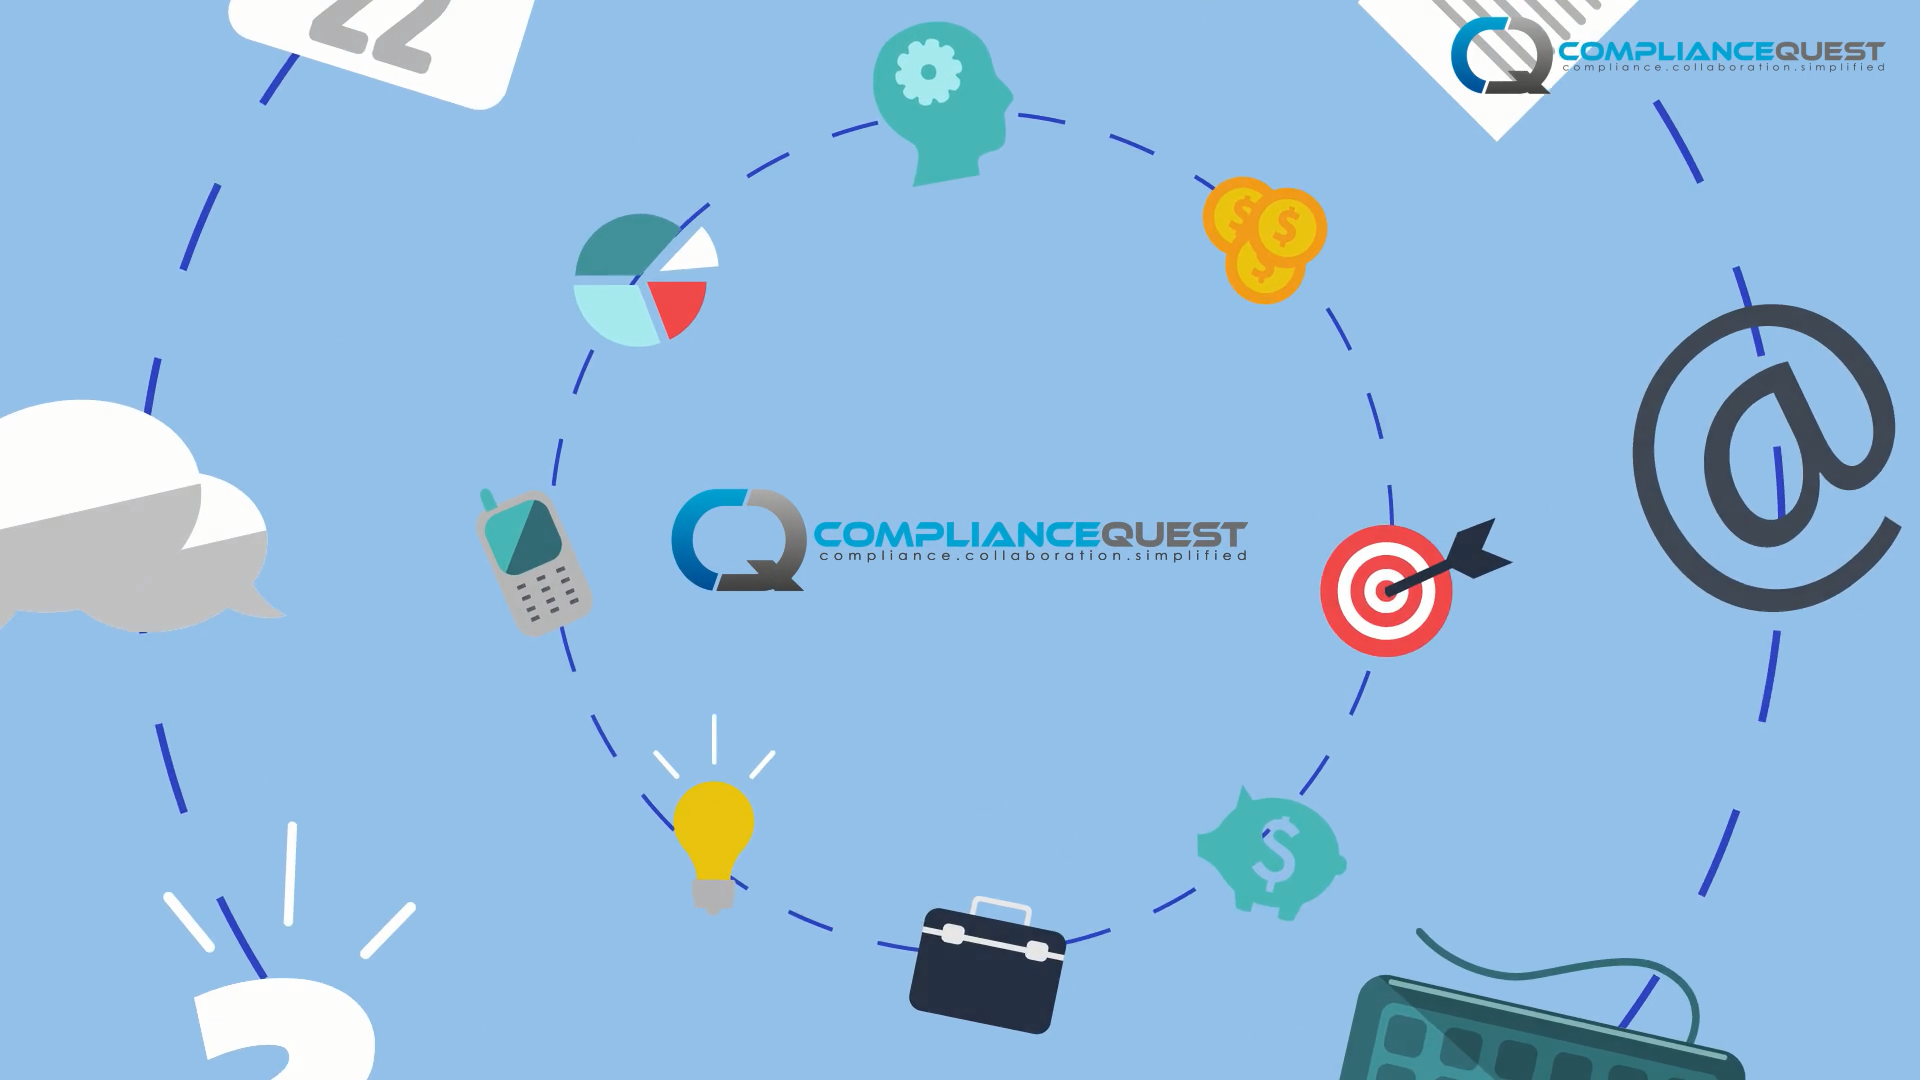 ComplianceQuest Detailed Product Video - Worked on the concept and script for this video. Coordinated closely with the agency to get all the details right.#Video #ContentStrategy #ContentDesign